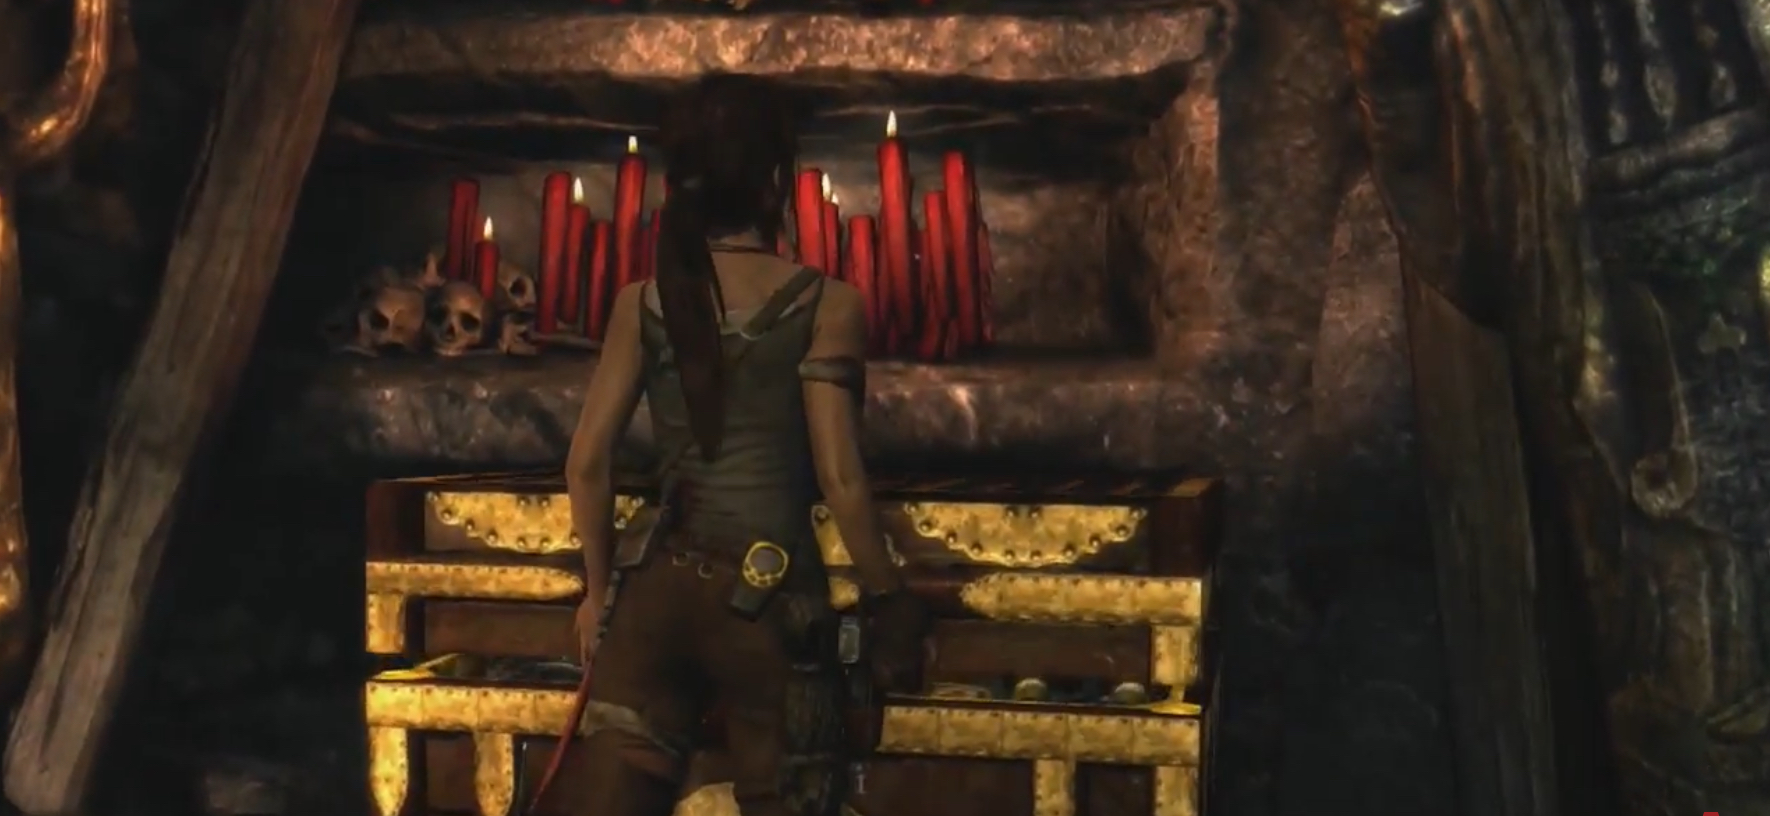 The 2013 Reboot Of Tomb Raider Is Now Free Via Steam Thanks To Square Enix's Generosity